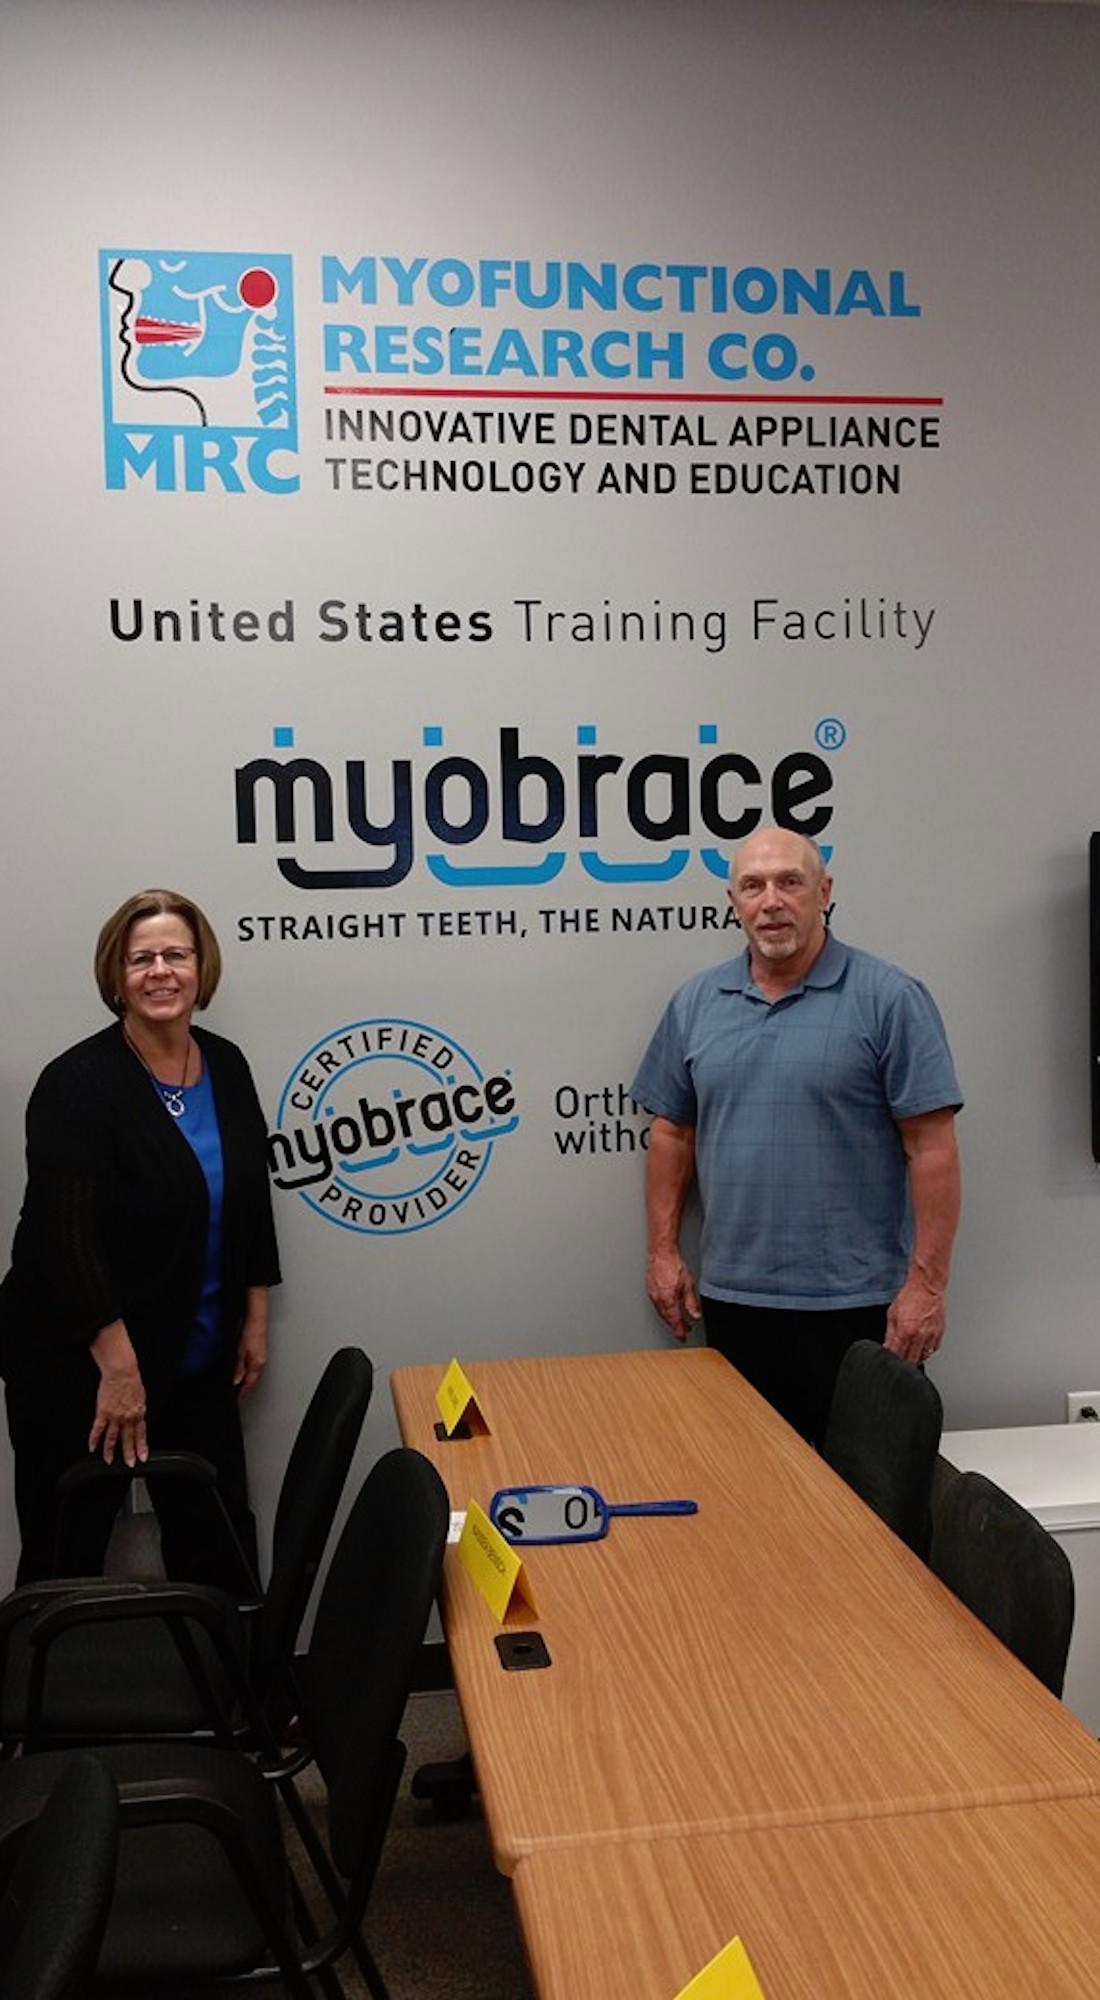 Janet and Dr. Pilgrim at the Myofunctional Research Company on April 17, 2016